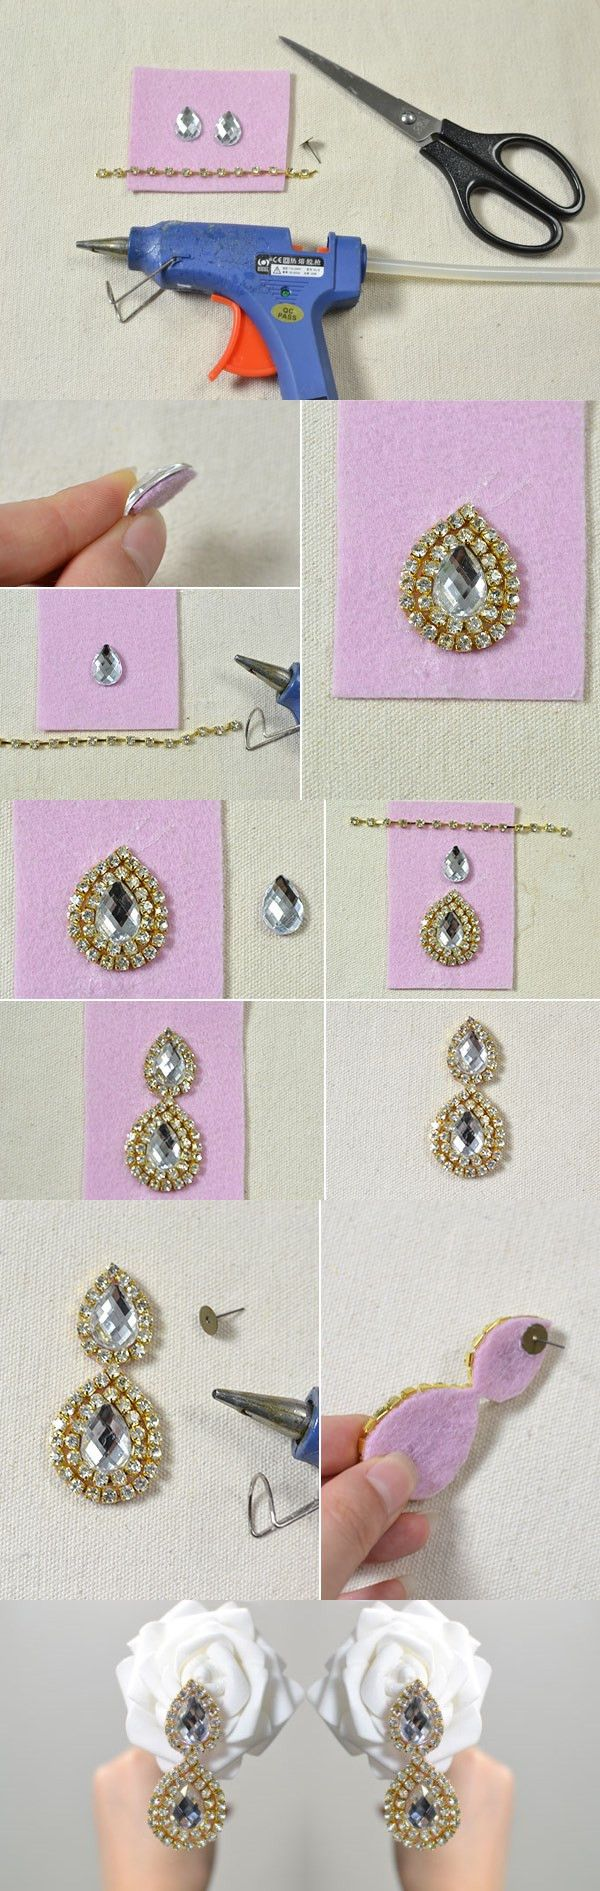 Tutorial on How to Make Drop Earrings with Rhinestone Beads from LC.Pandahall.com                              #pandahall